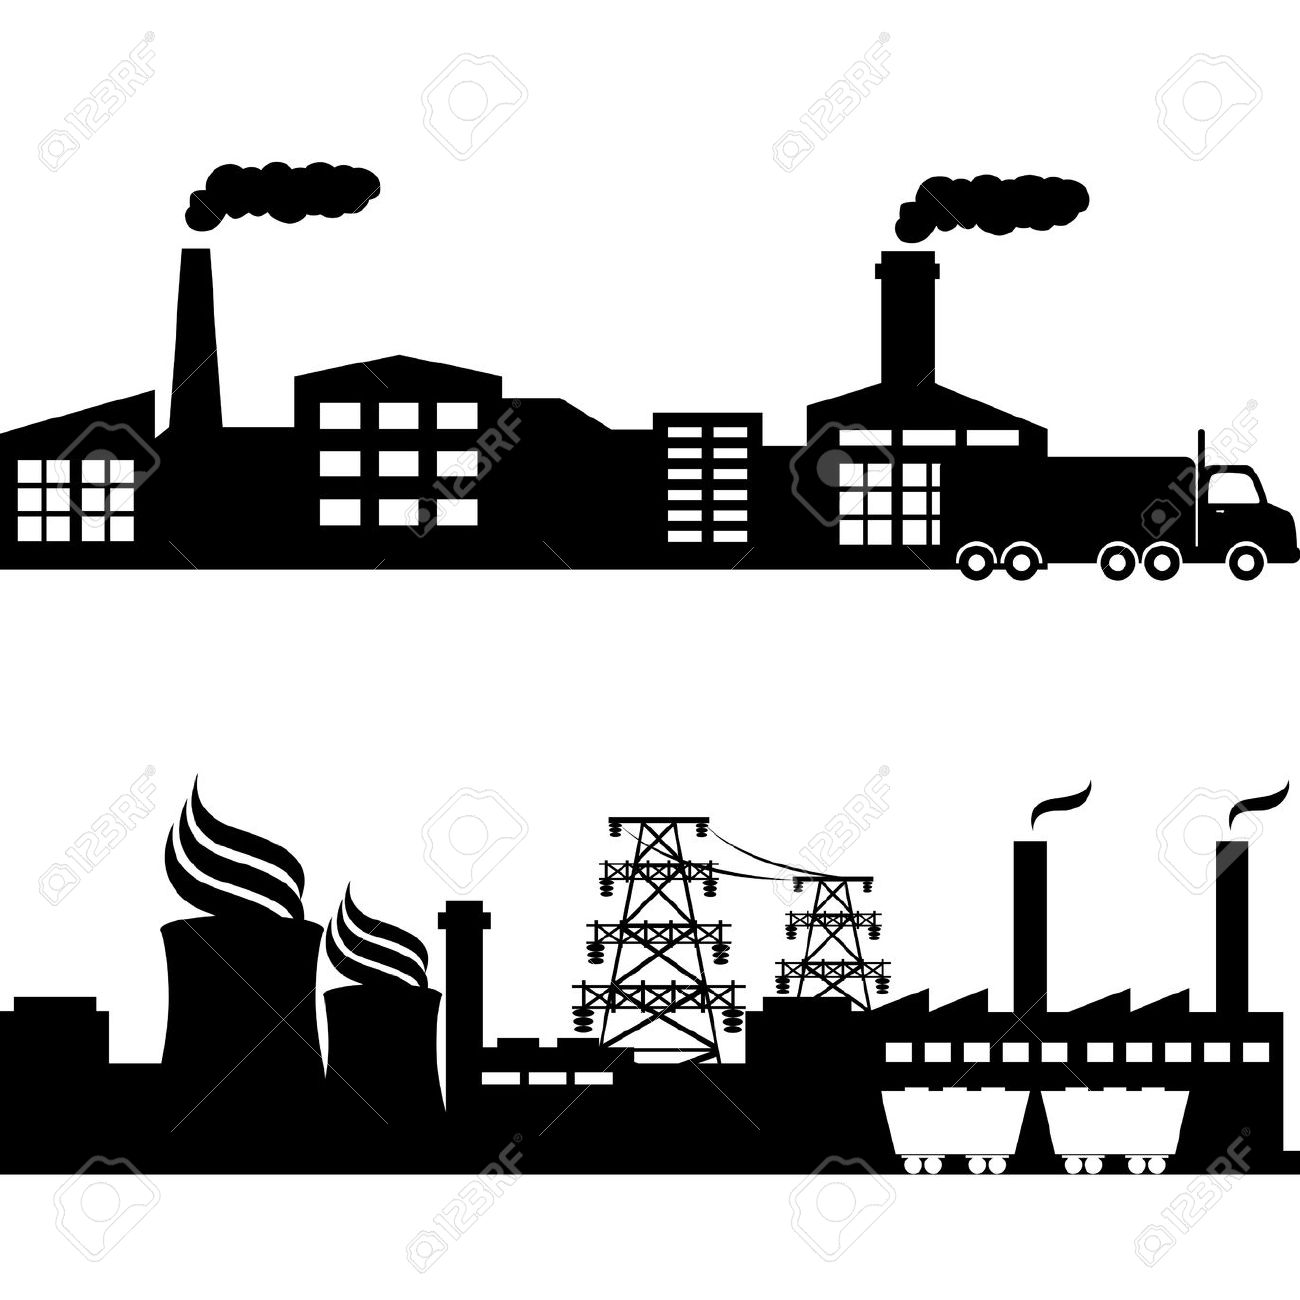 Power plant clipart - Clipground